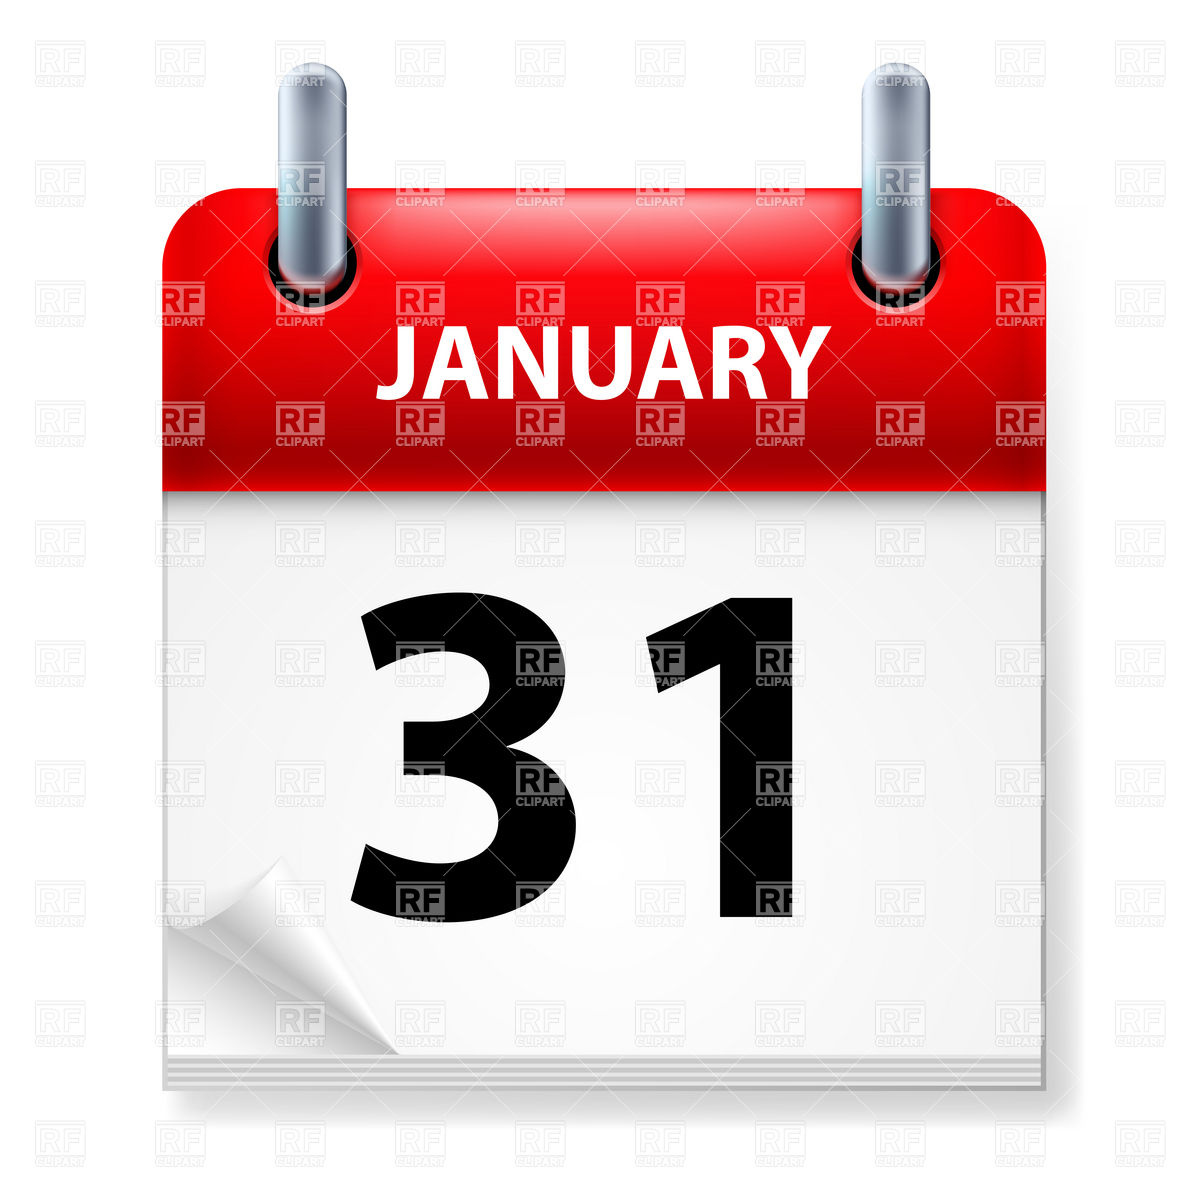 January 31 calendar clipart graphic royalty free stock January 31 calendar clipart - ClipartFest graphic royalty free stock